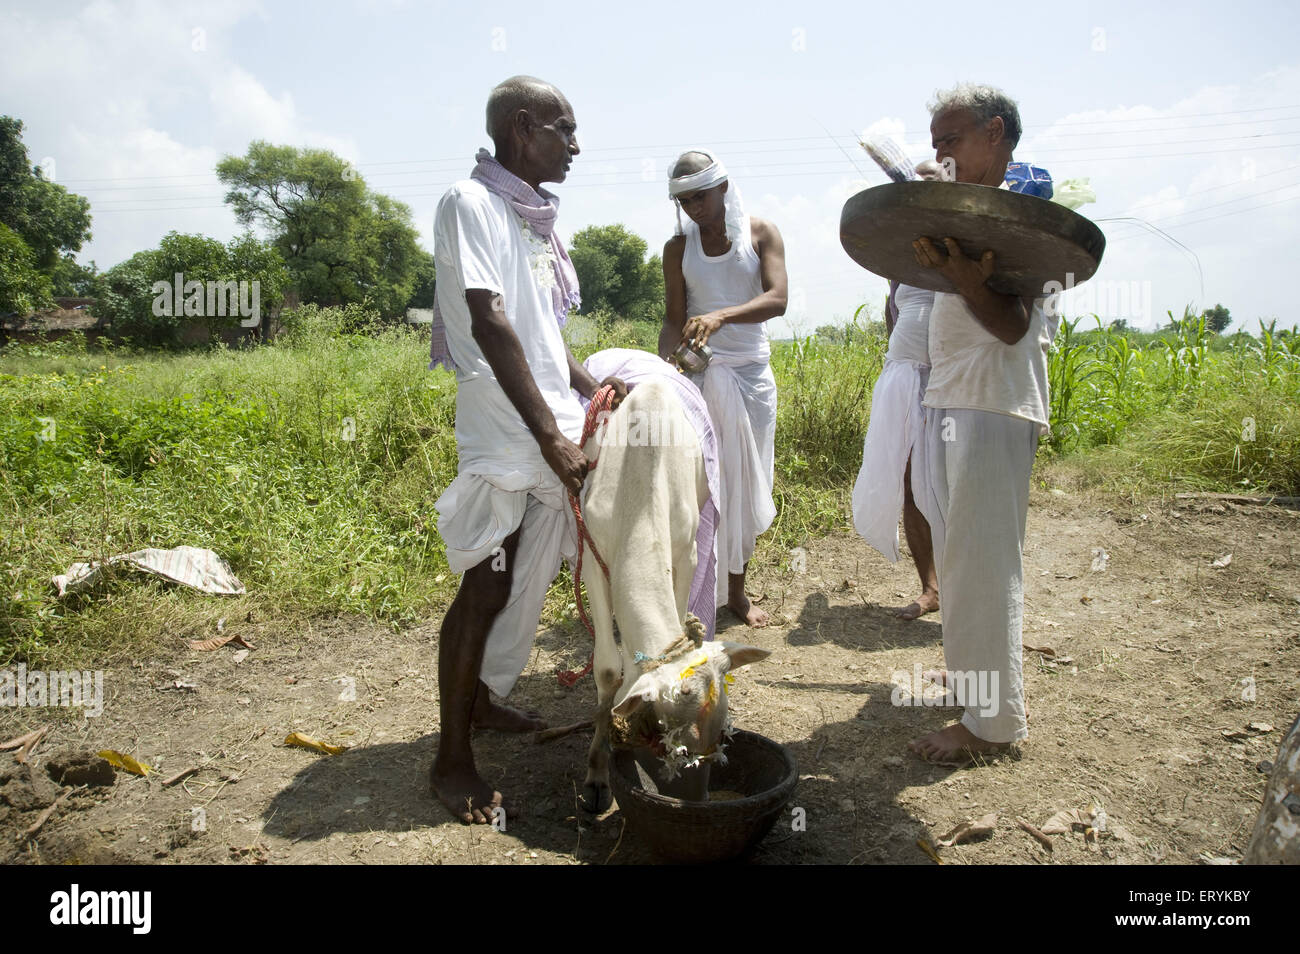 Cow donation ritual ceremony in jaunpur at uttar pradesh India - MR#707h4 - akm 185626 - Stock Image